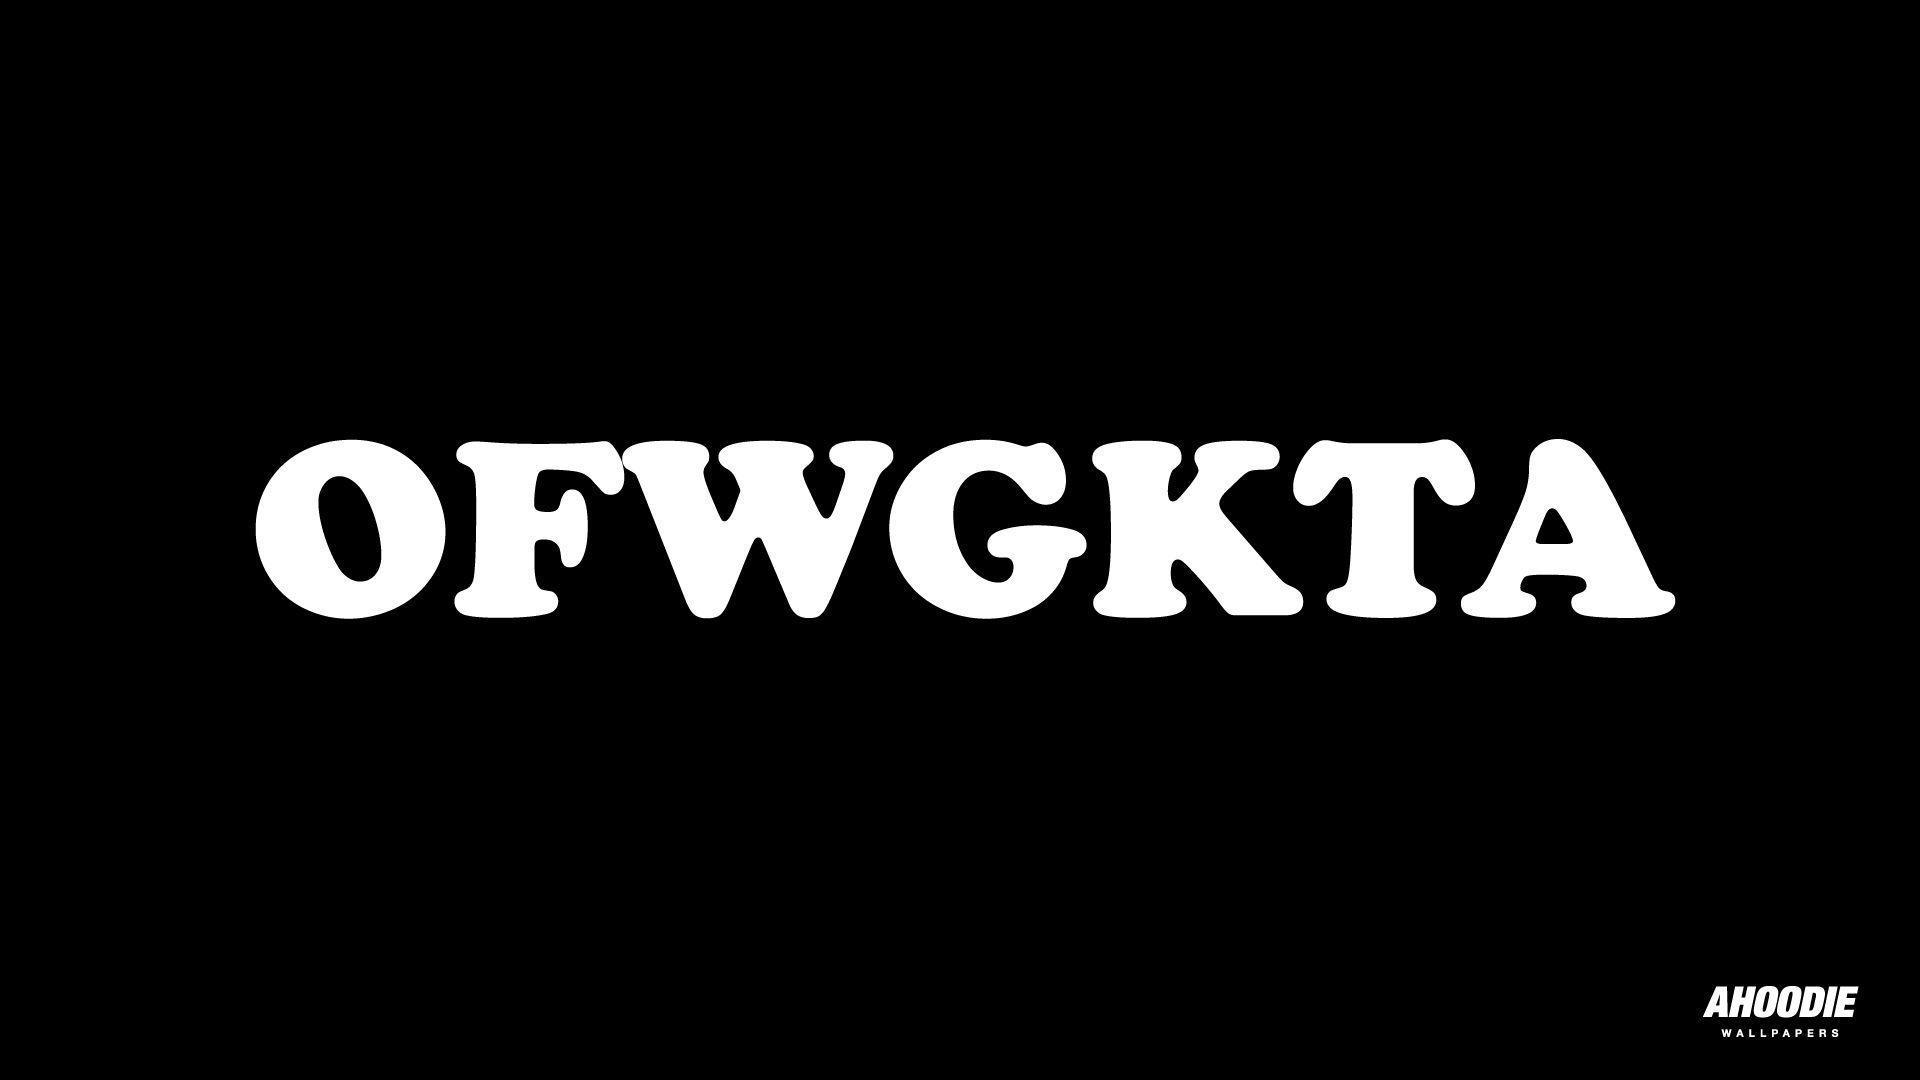 Odd Future Wallpapers - Wallpaper Cave